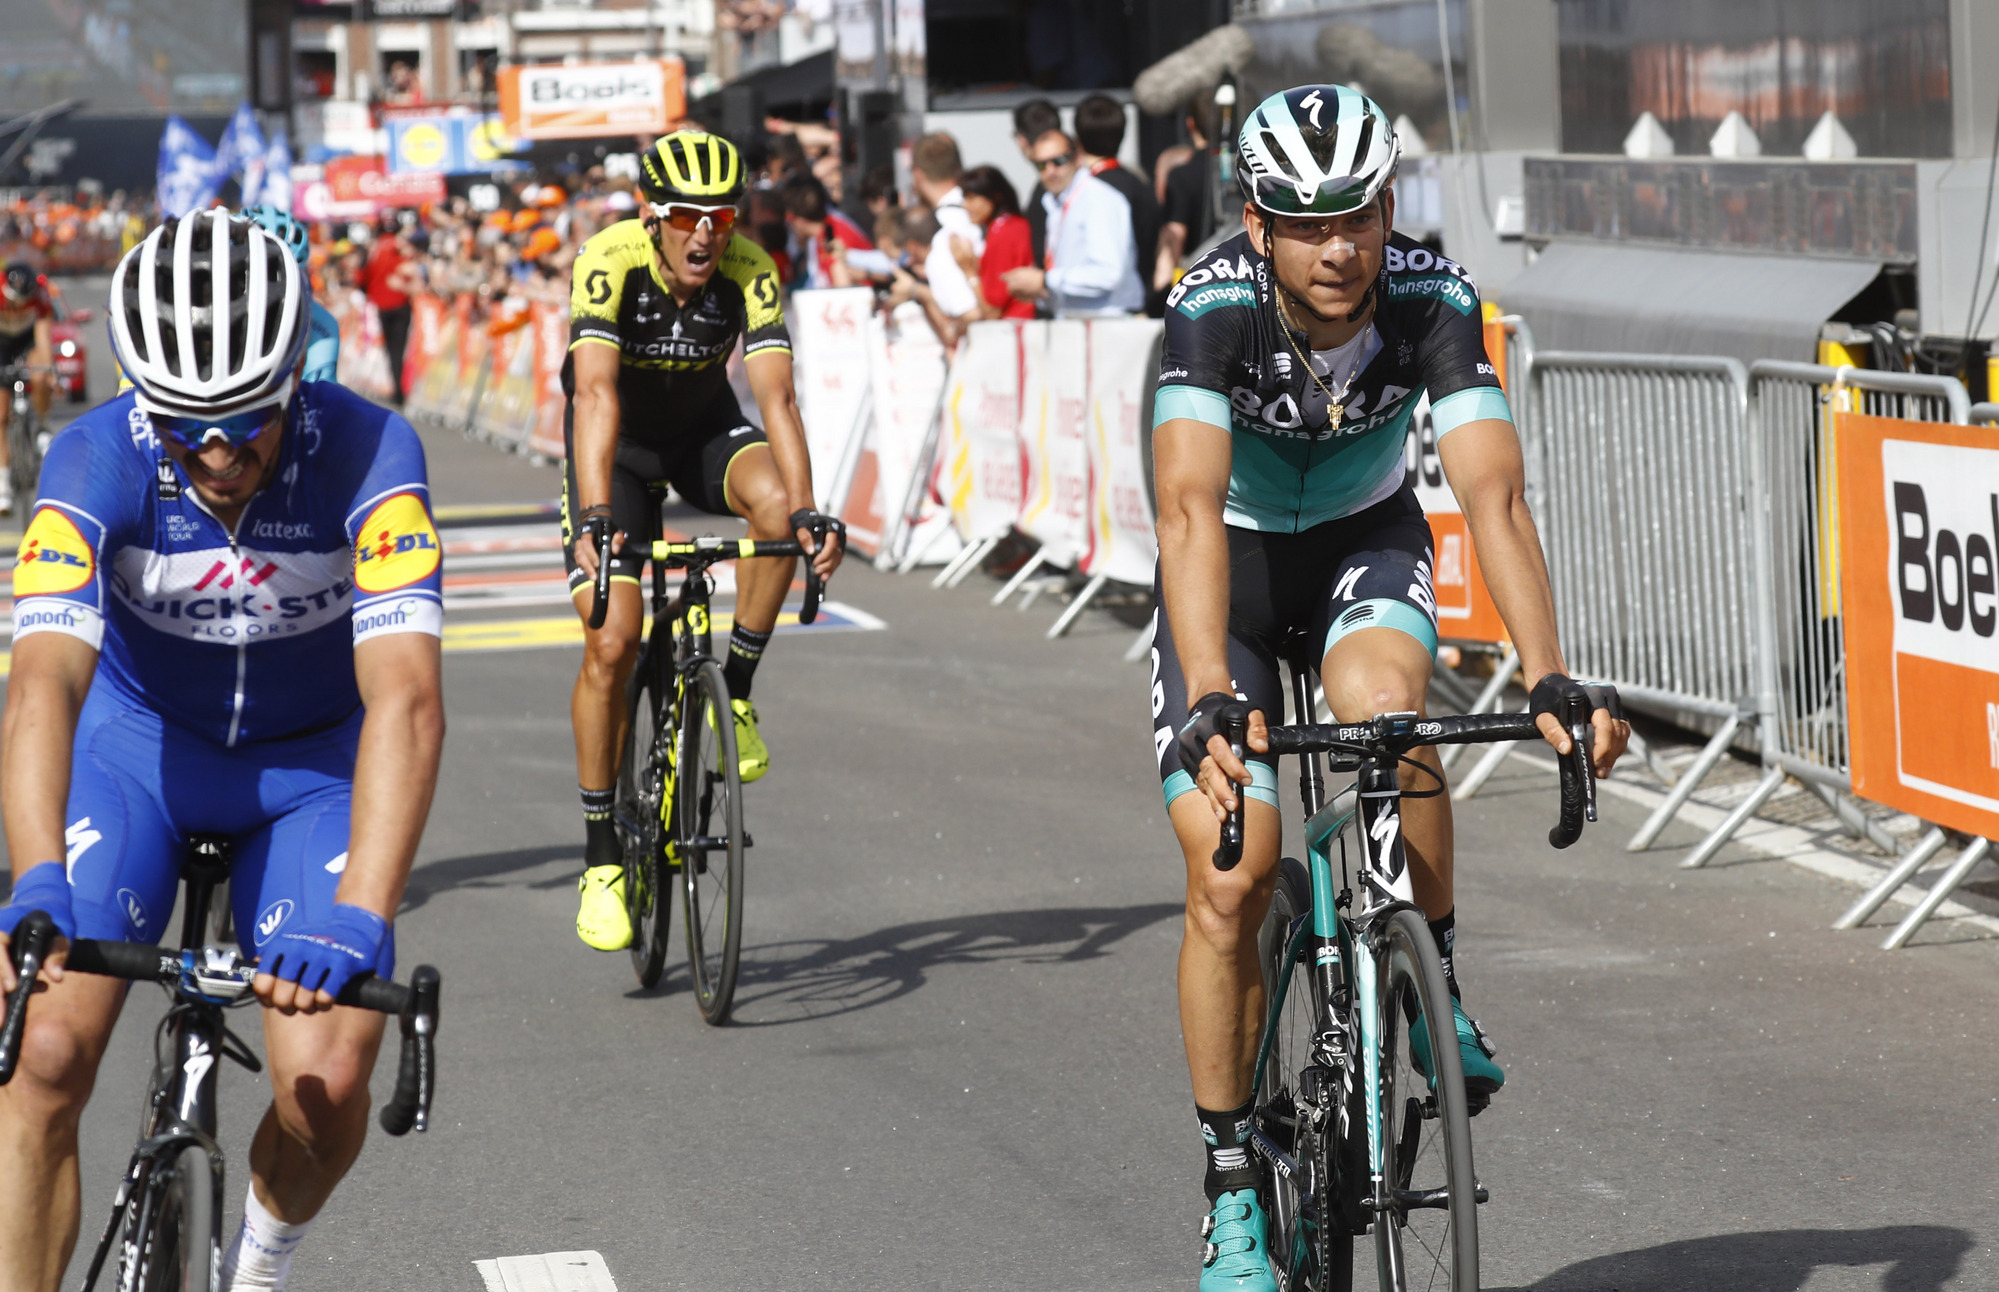 Davide Formolo races to 7th place in his favorite one day race